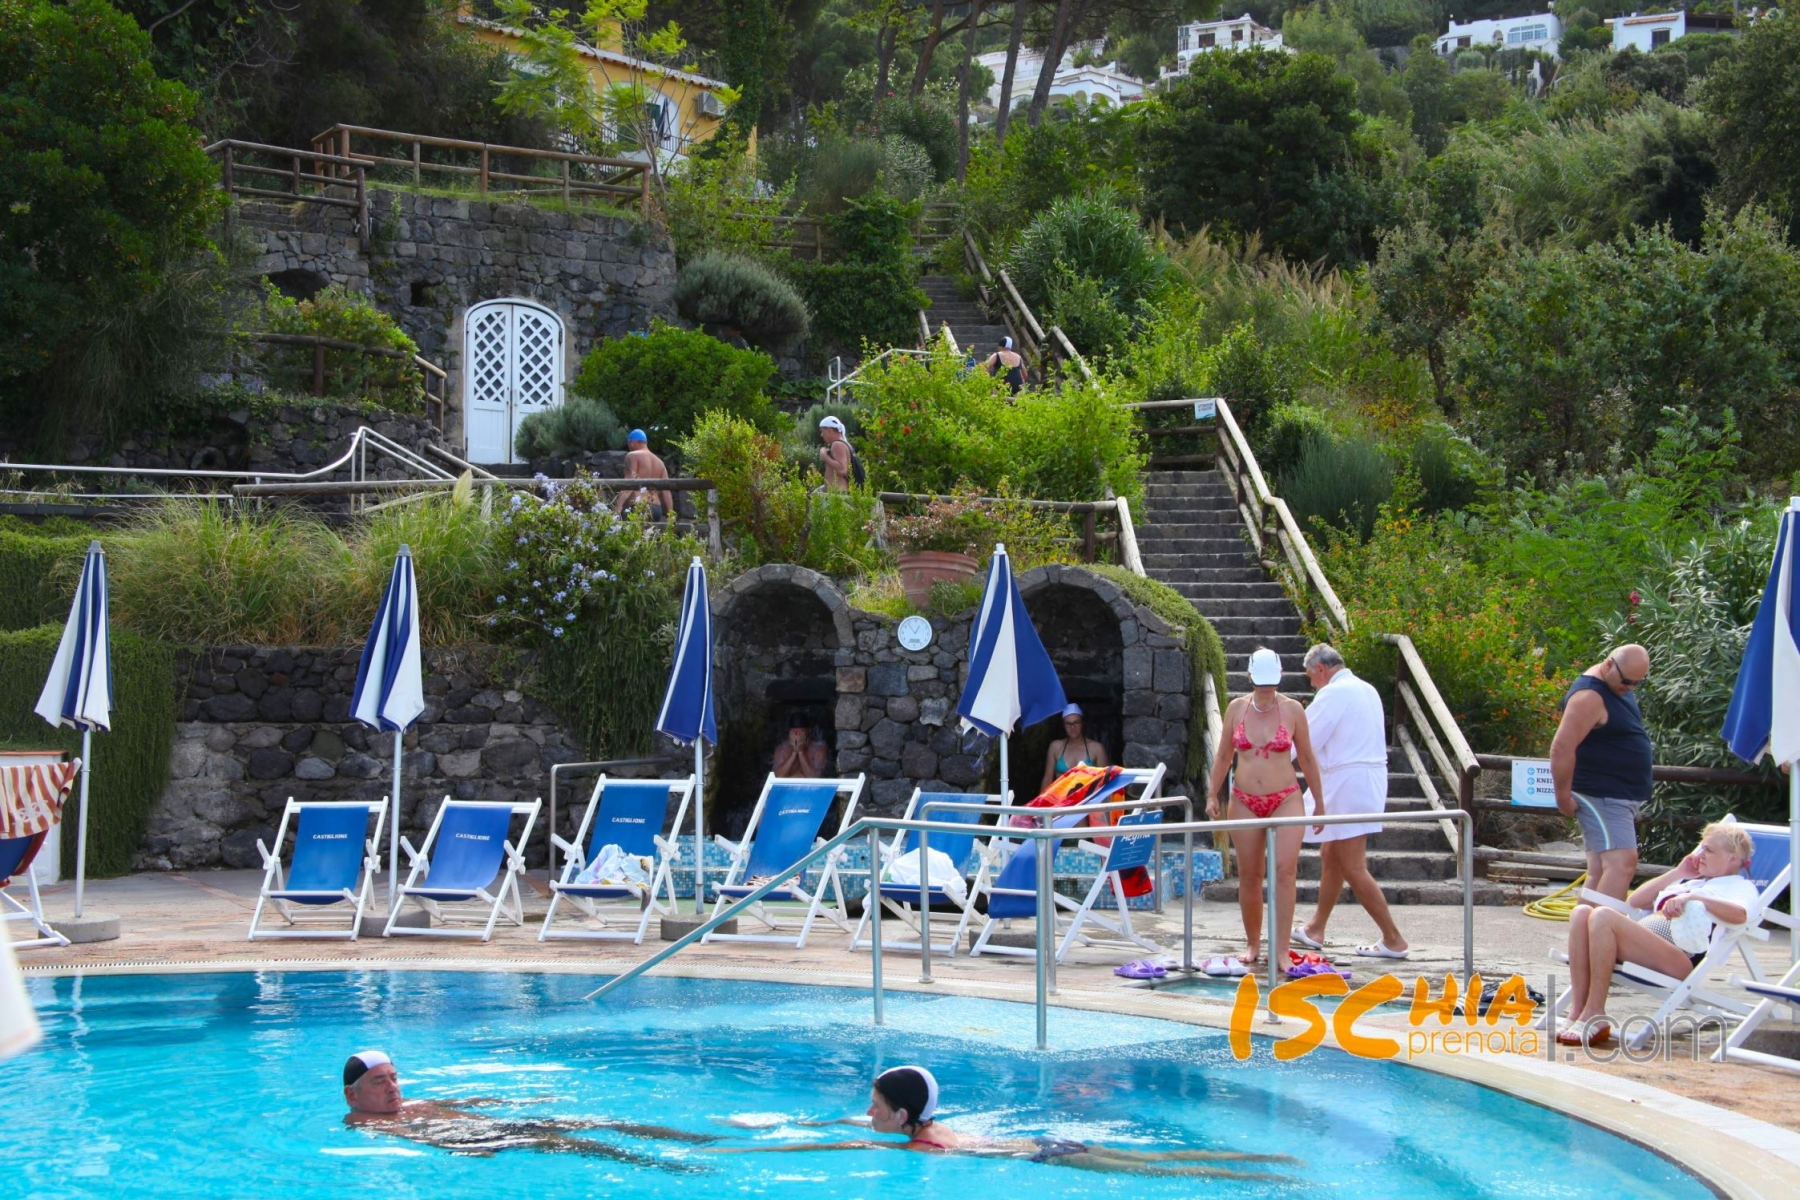 Bagno Giapponese Terme Ischia : Le guide di agrodolce mangiare a ischia agrodolce